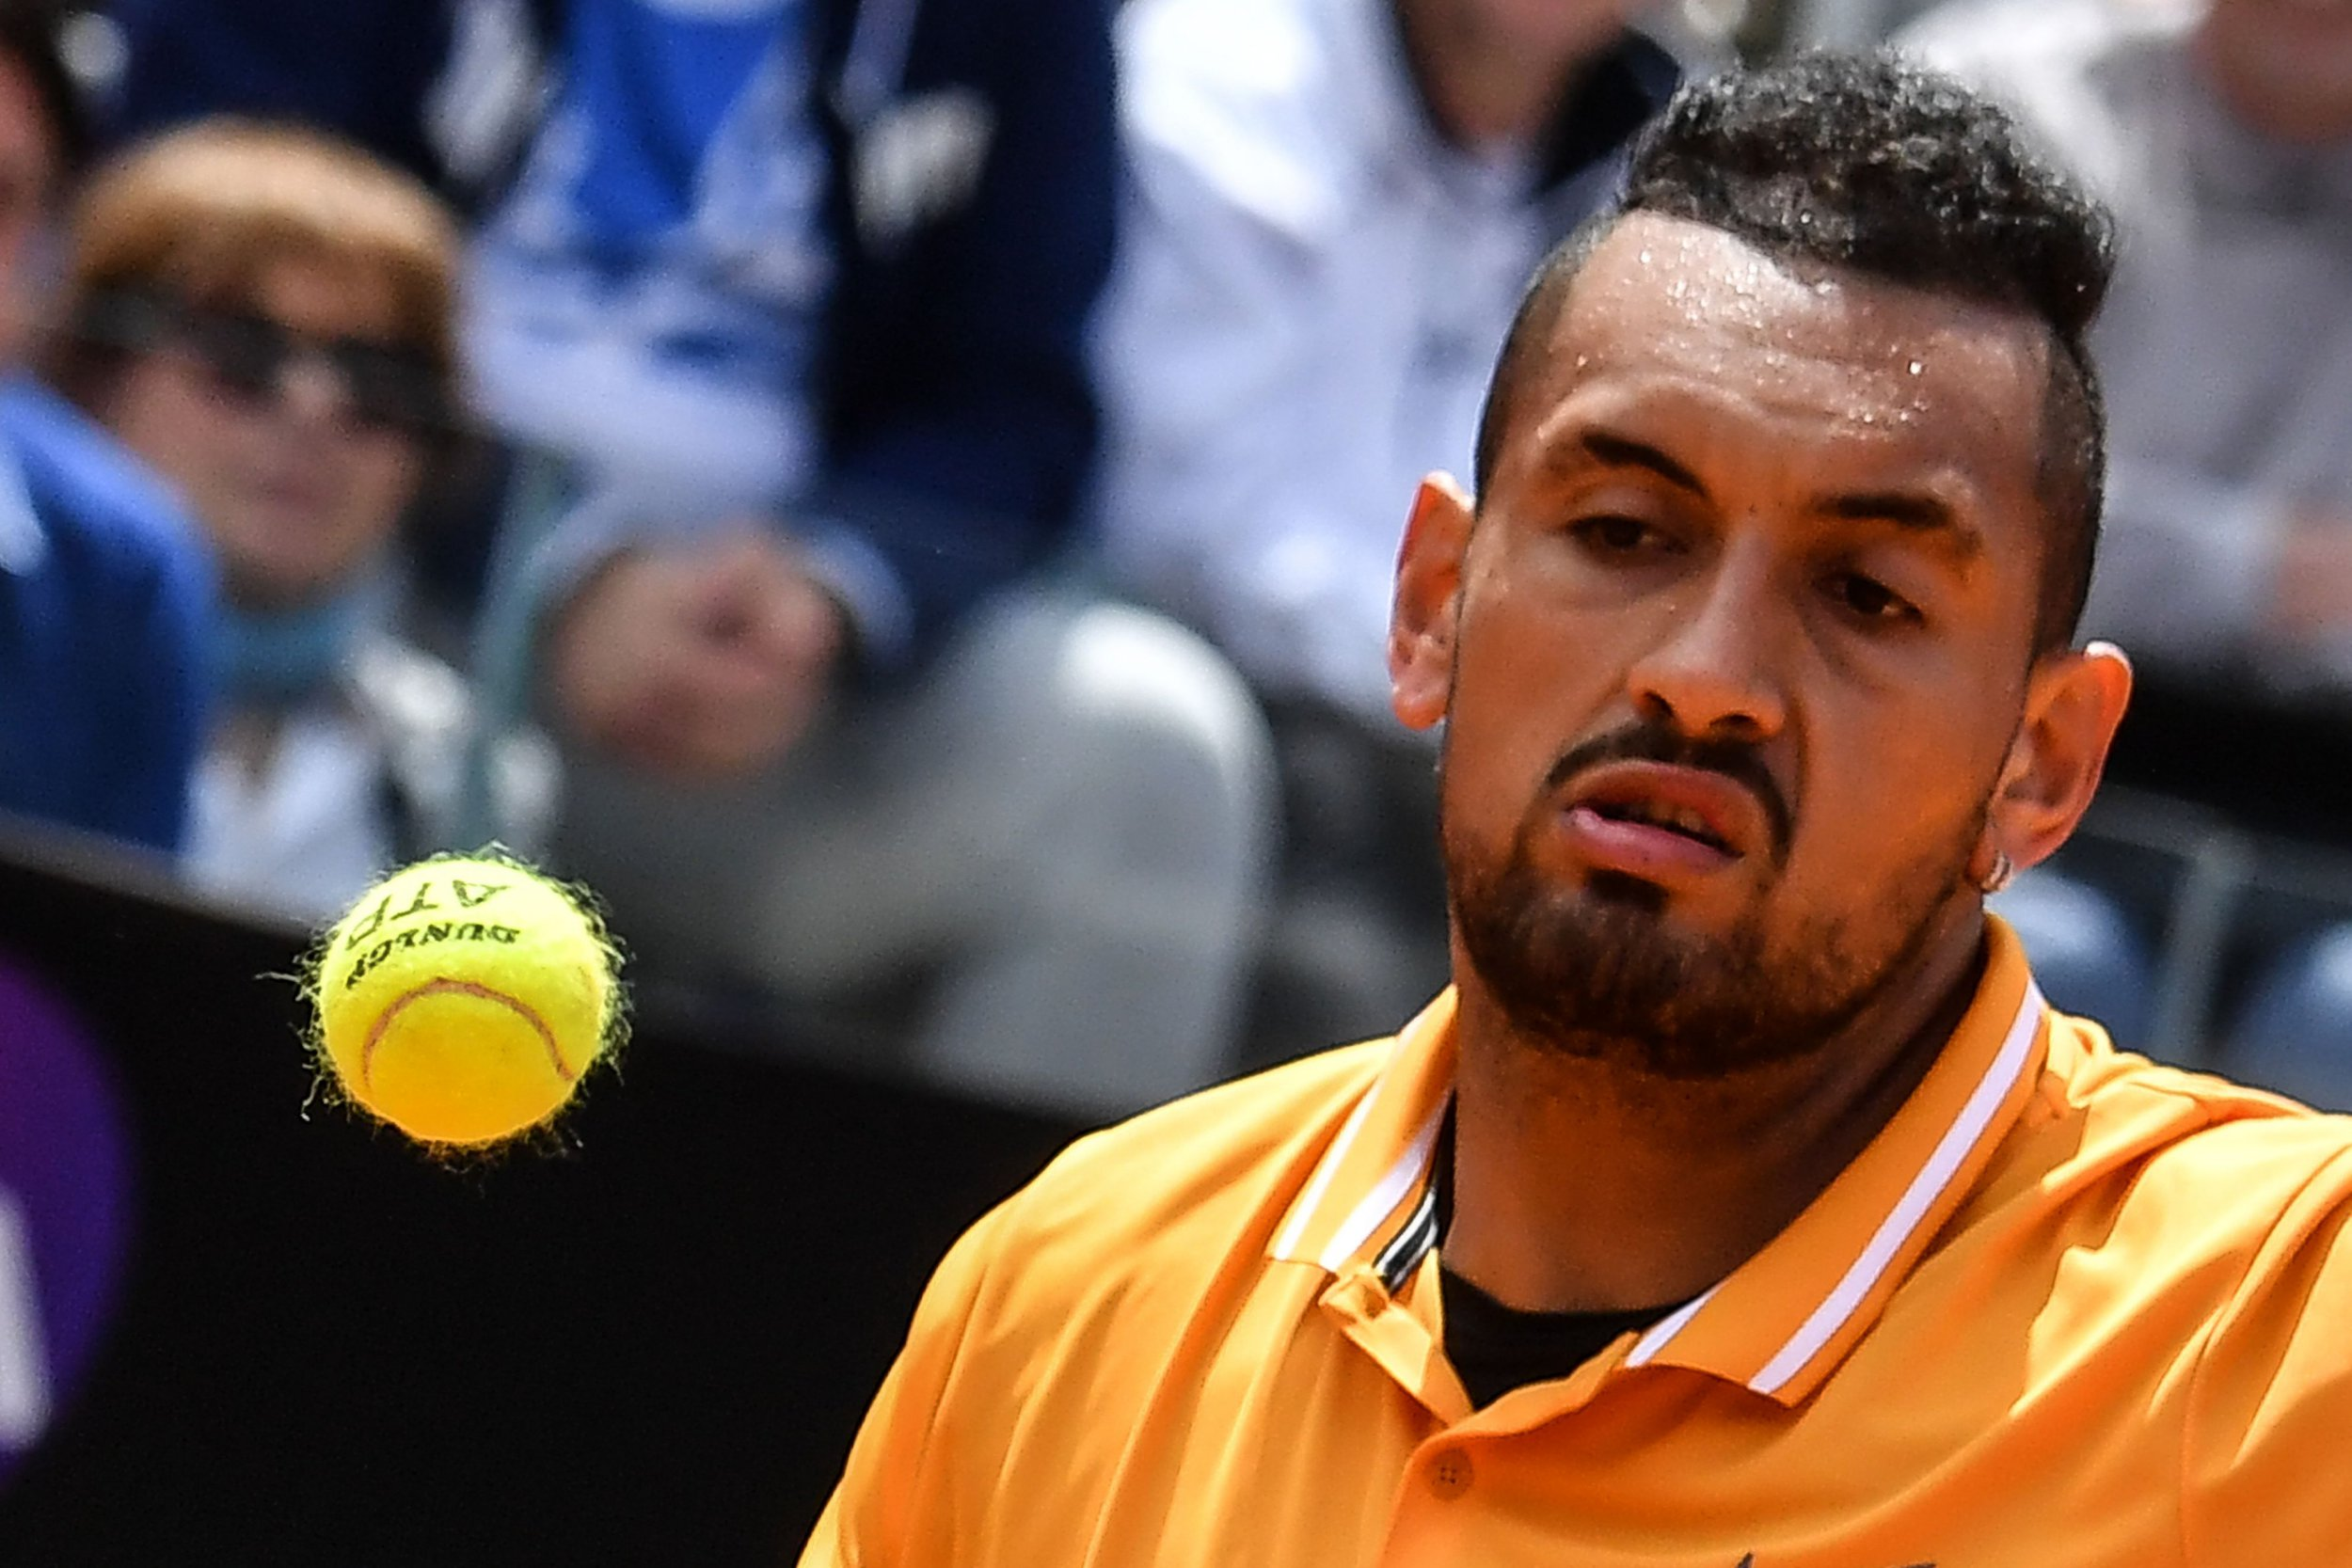 SEI_67258118 What furious Nick Kyrgios yelled at fans in foul-mouthed rant before throwing chair